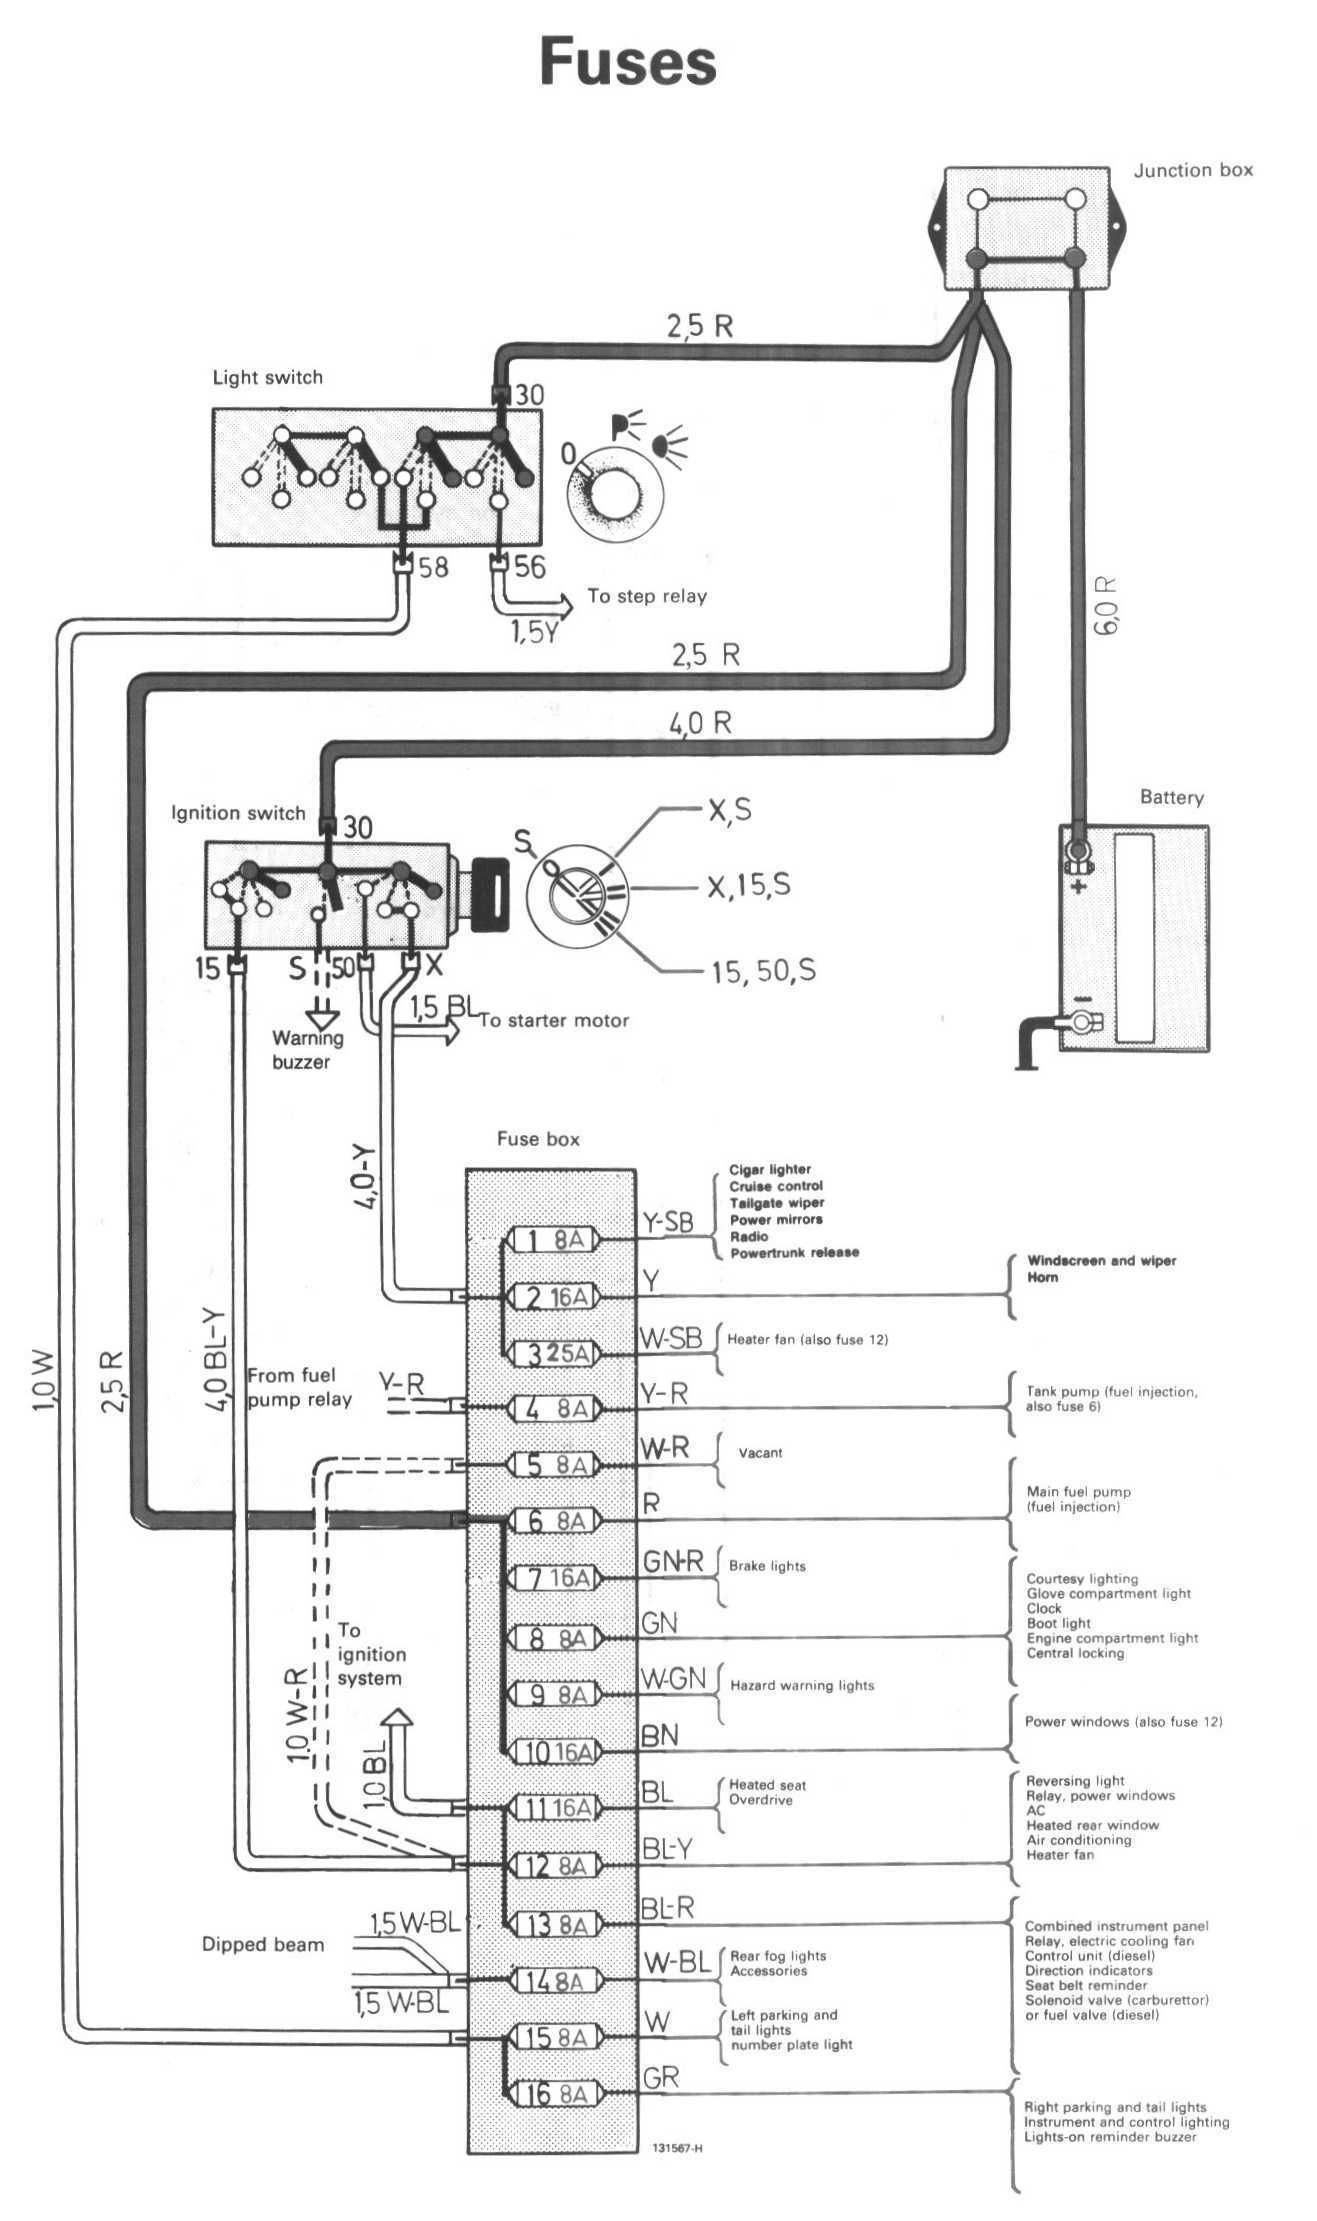 hight resolution of fuse box schema volvo 240 pinterest volvo volvo s40 and volvo 240 fuse box schema